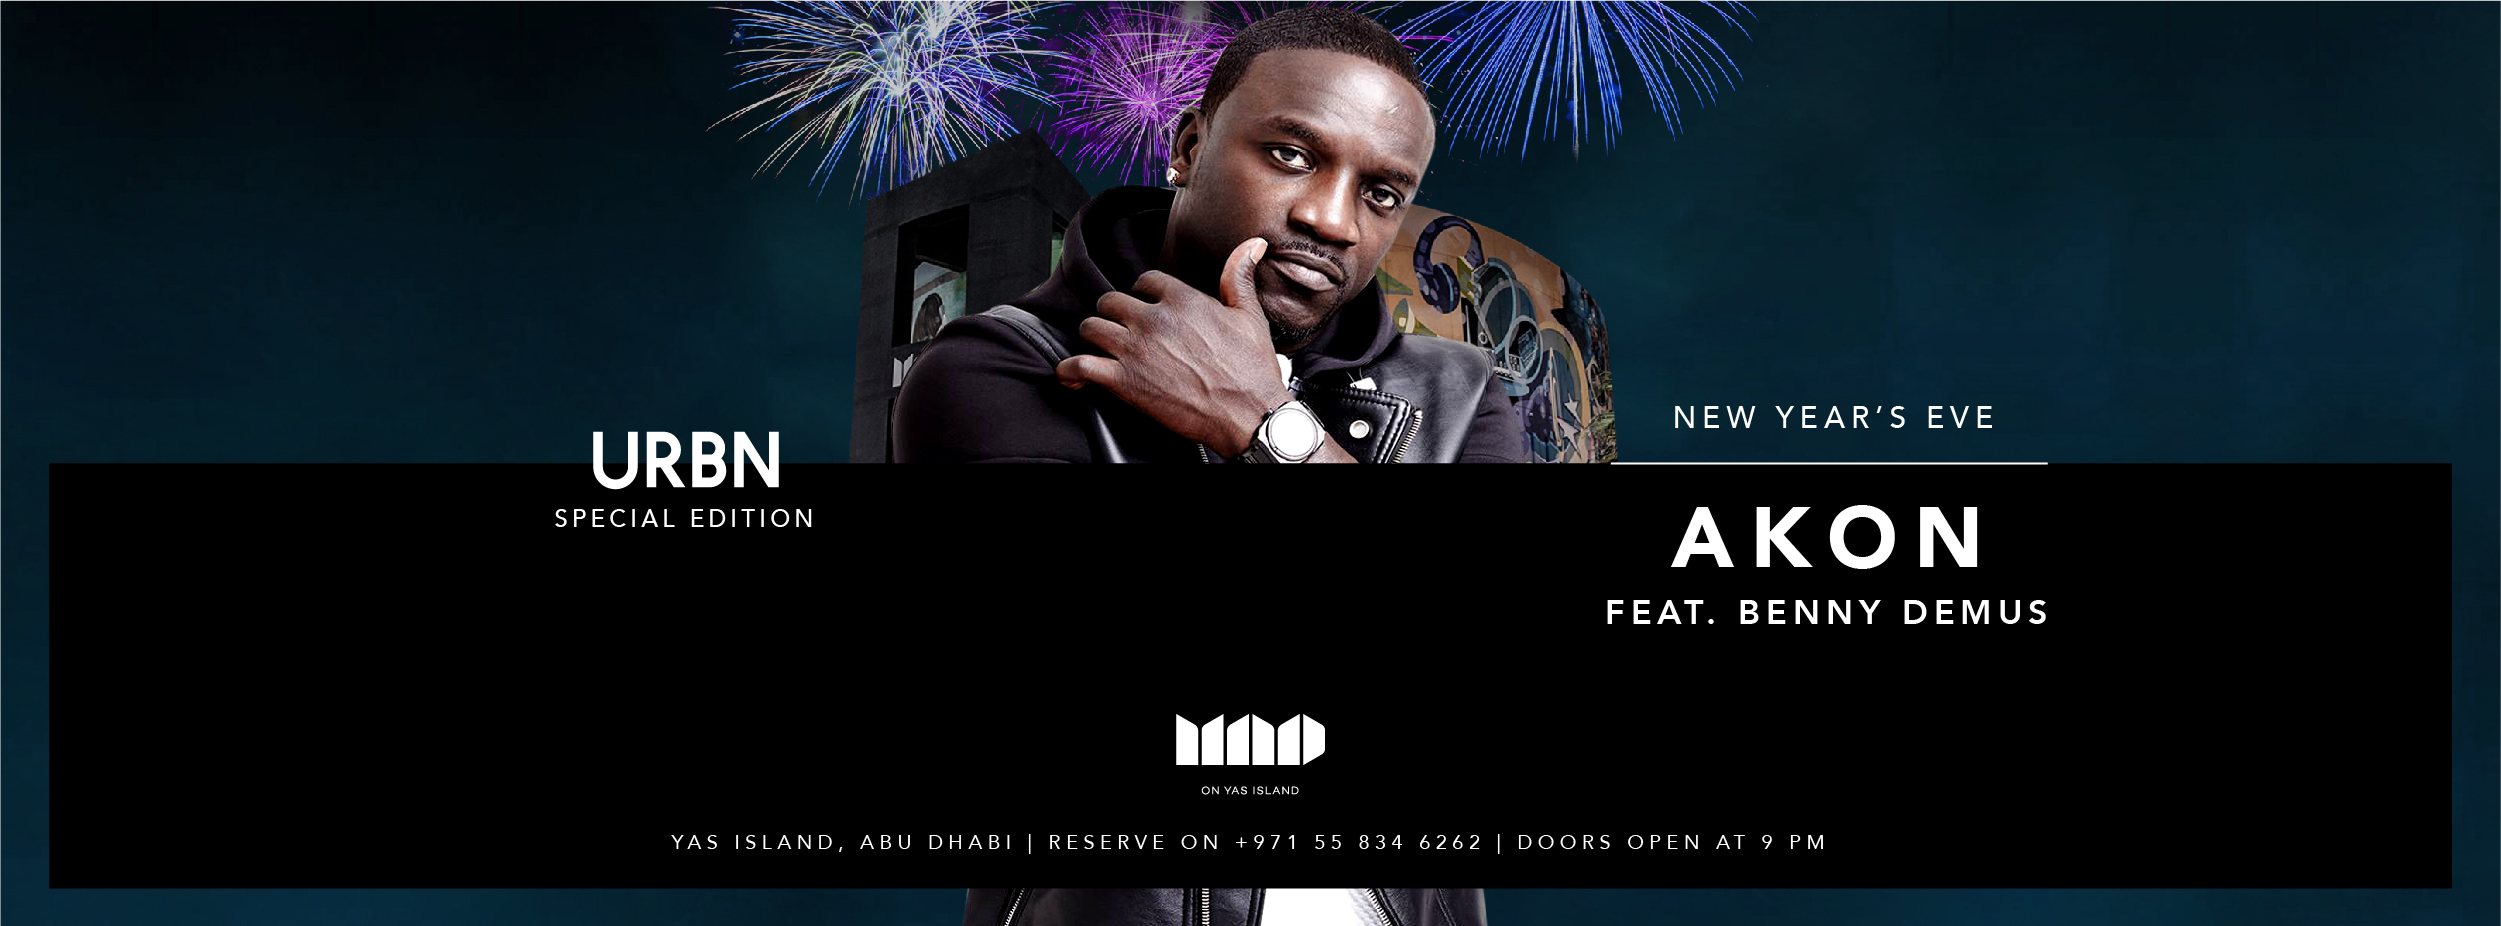 AKON for NYE @ MAD